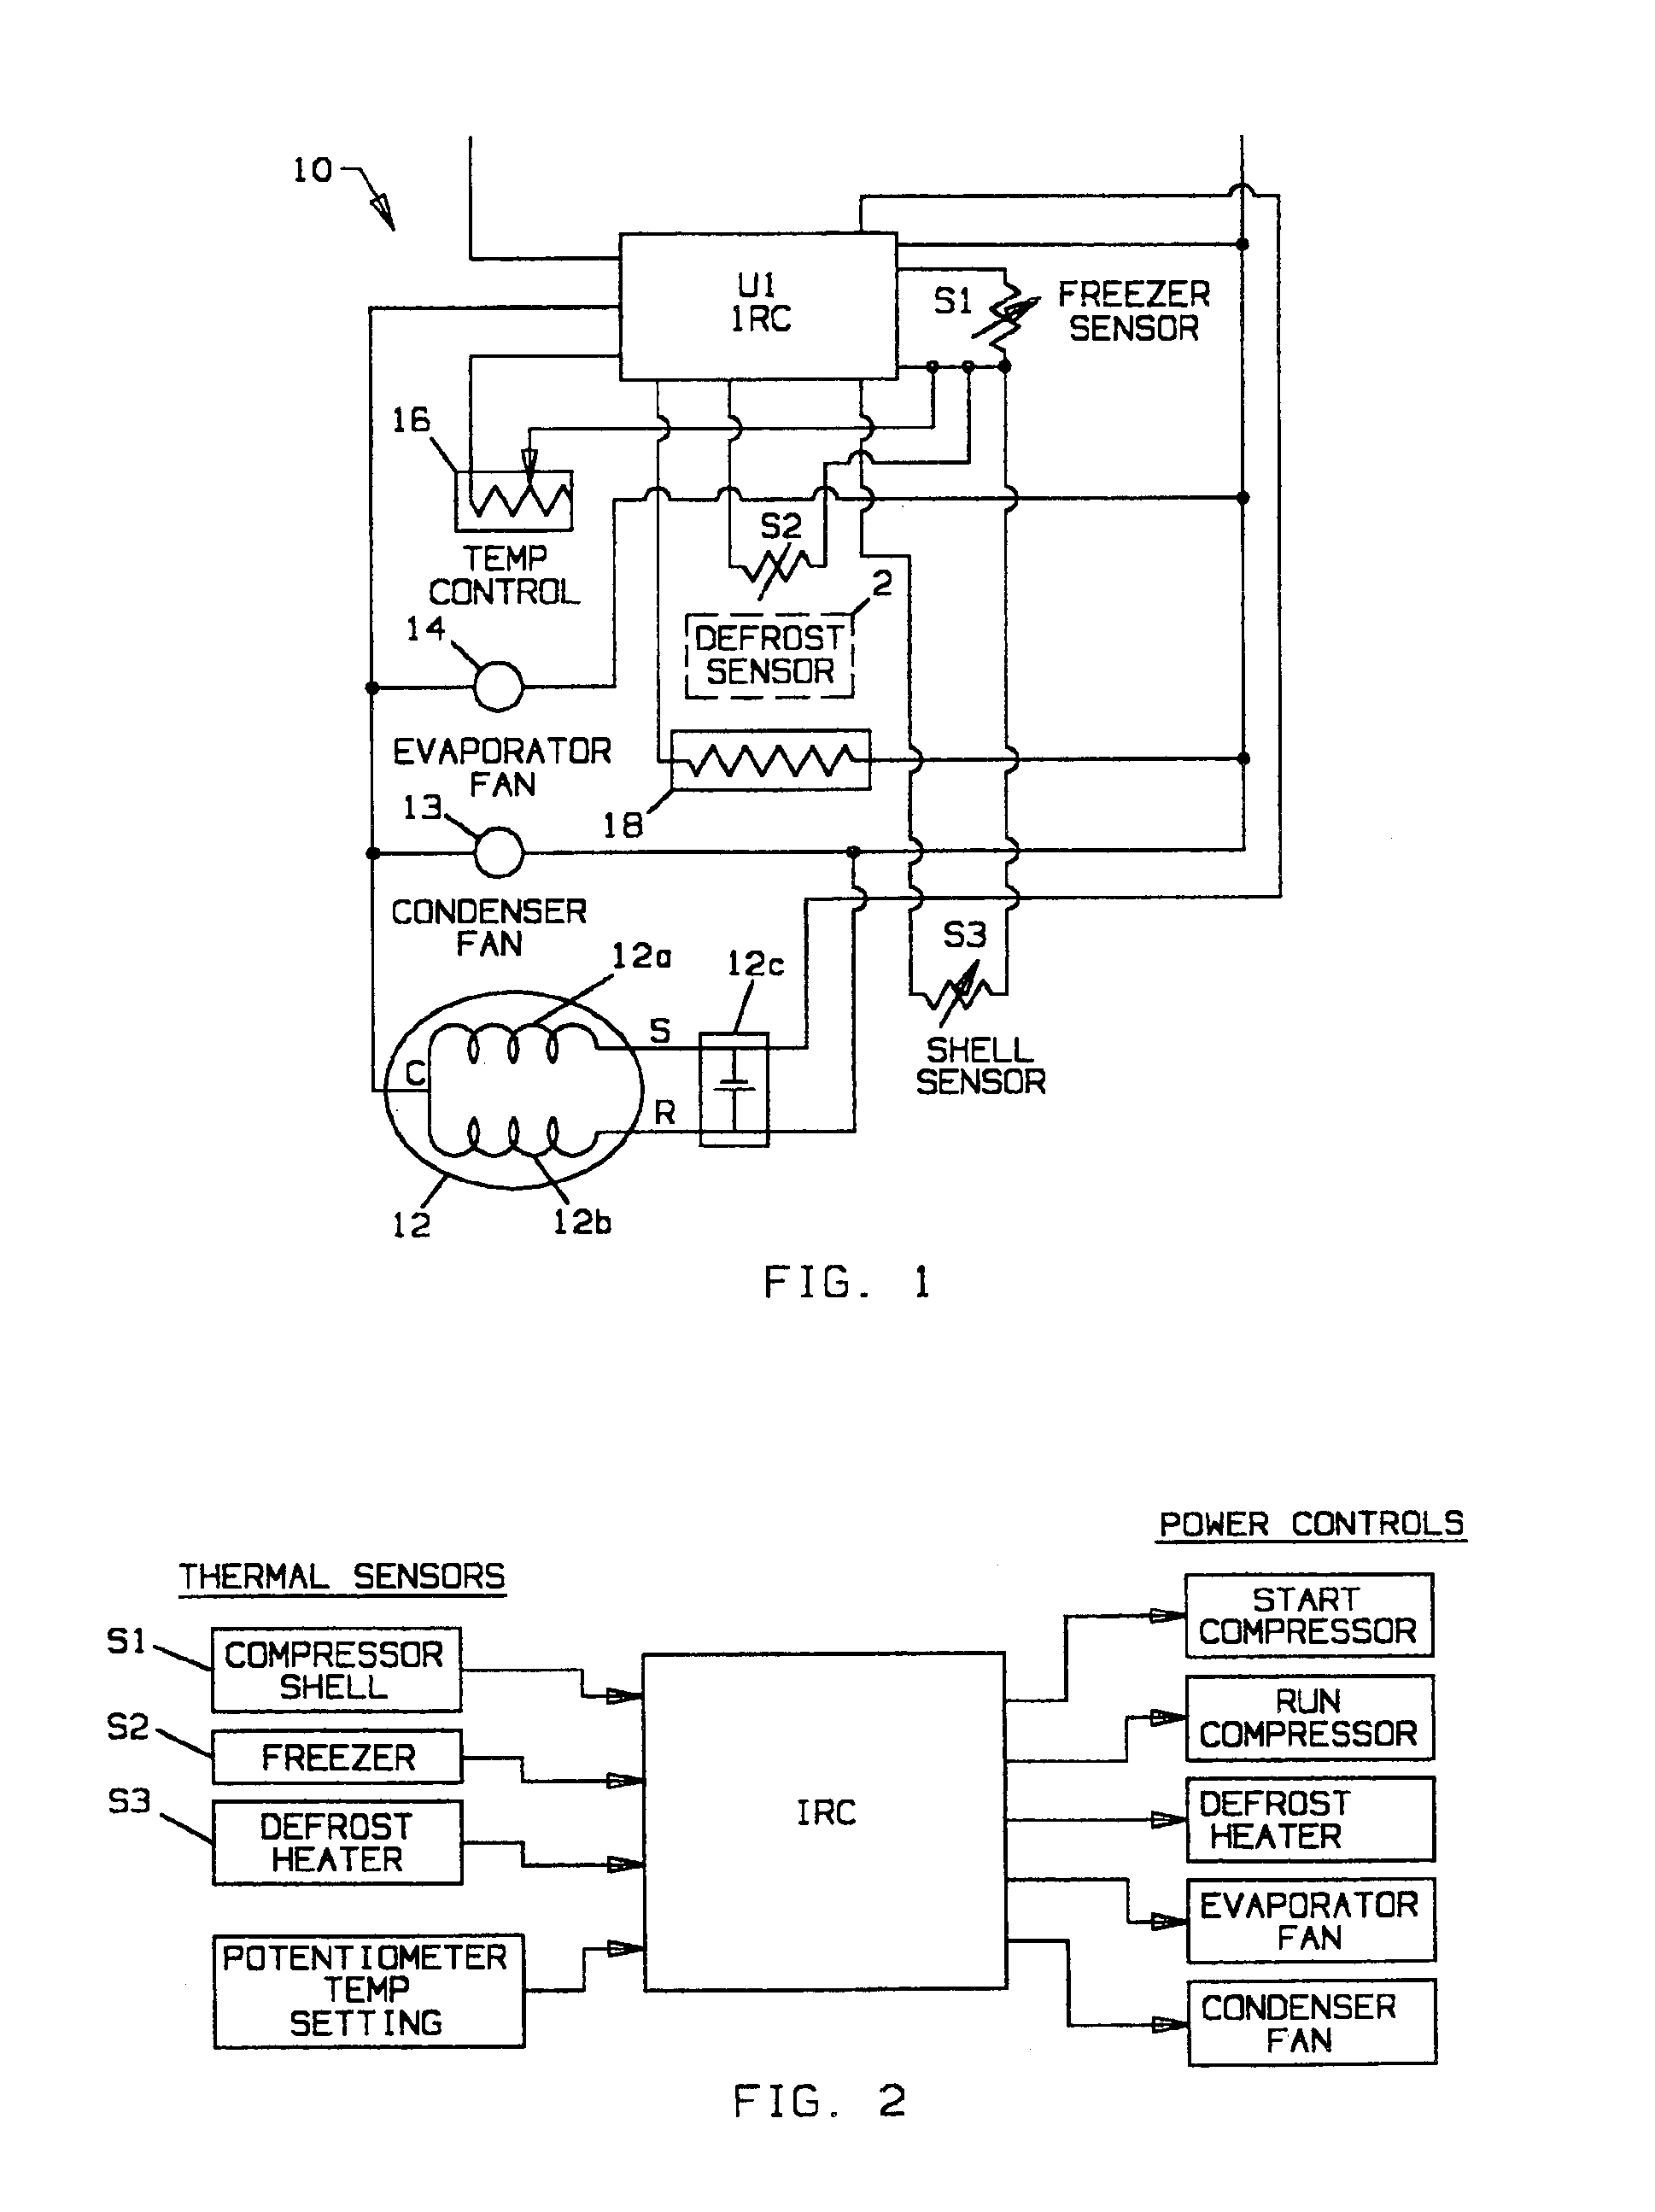 patent us6851270 - integrated refrigeration control